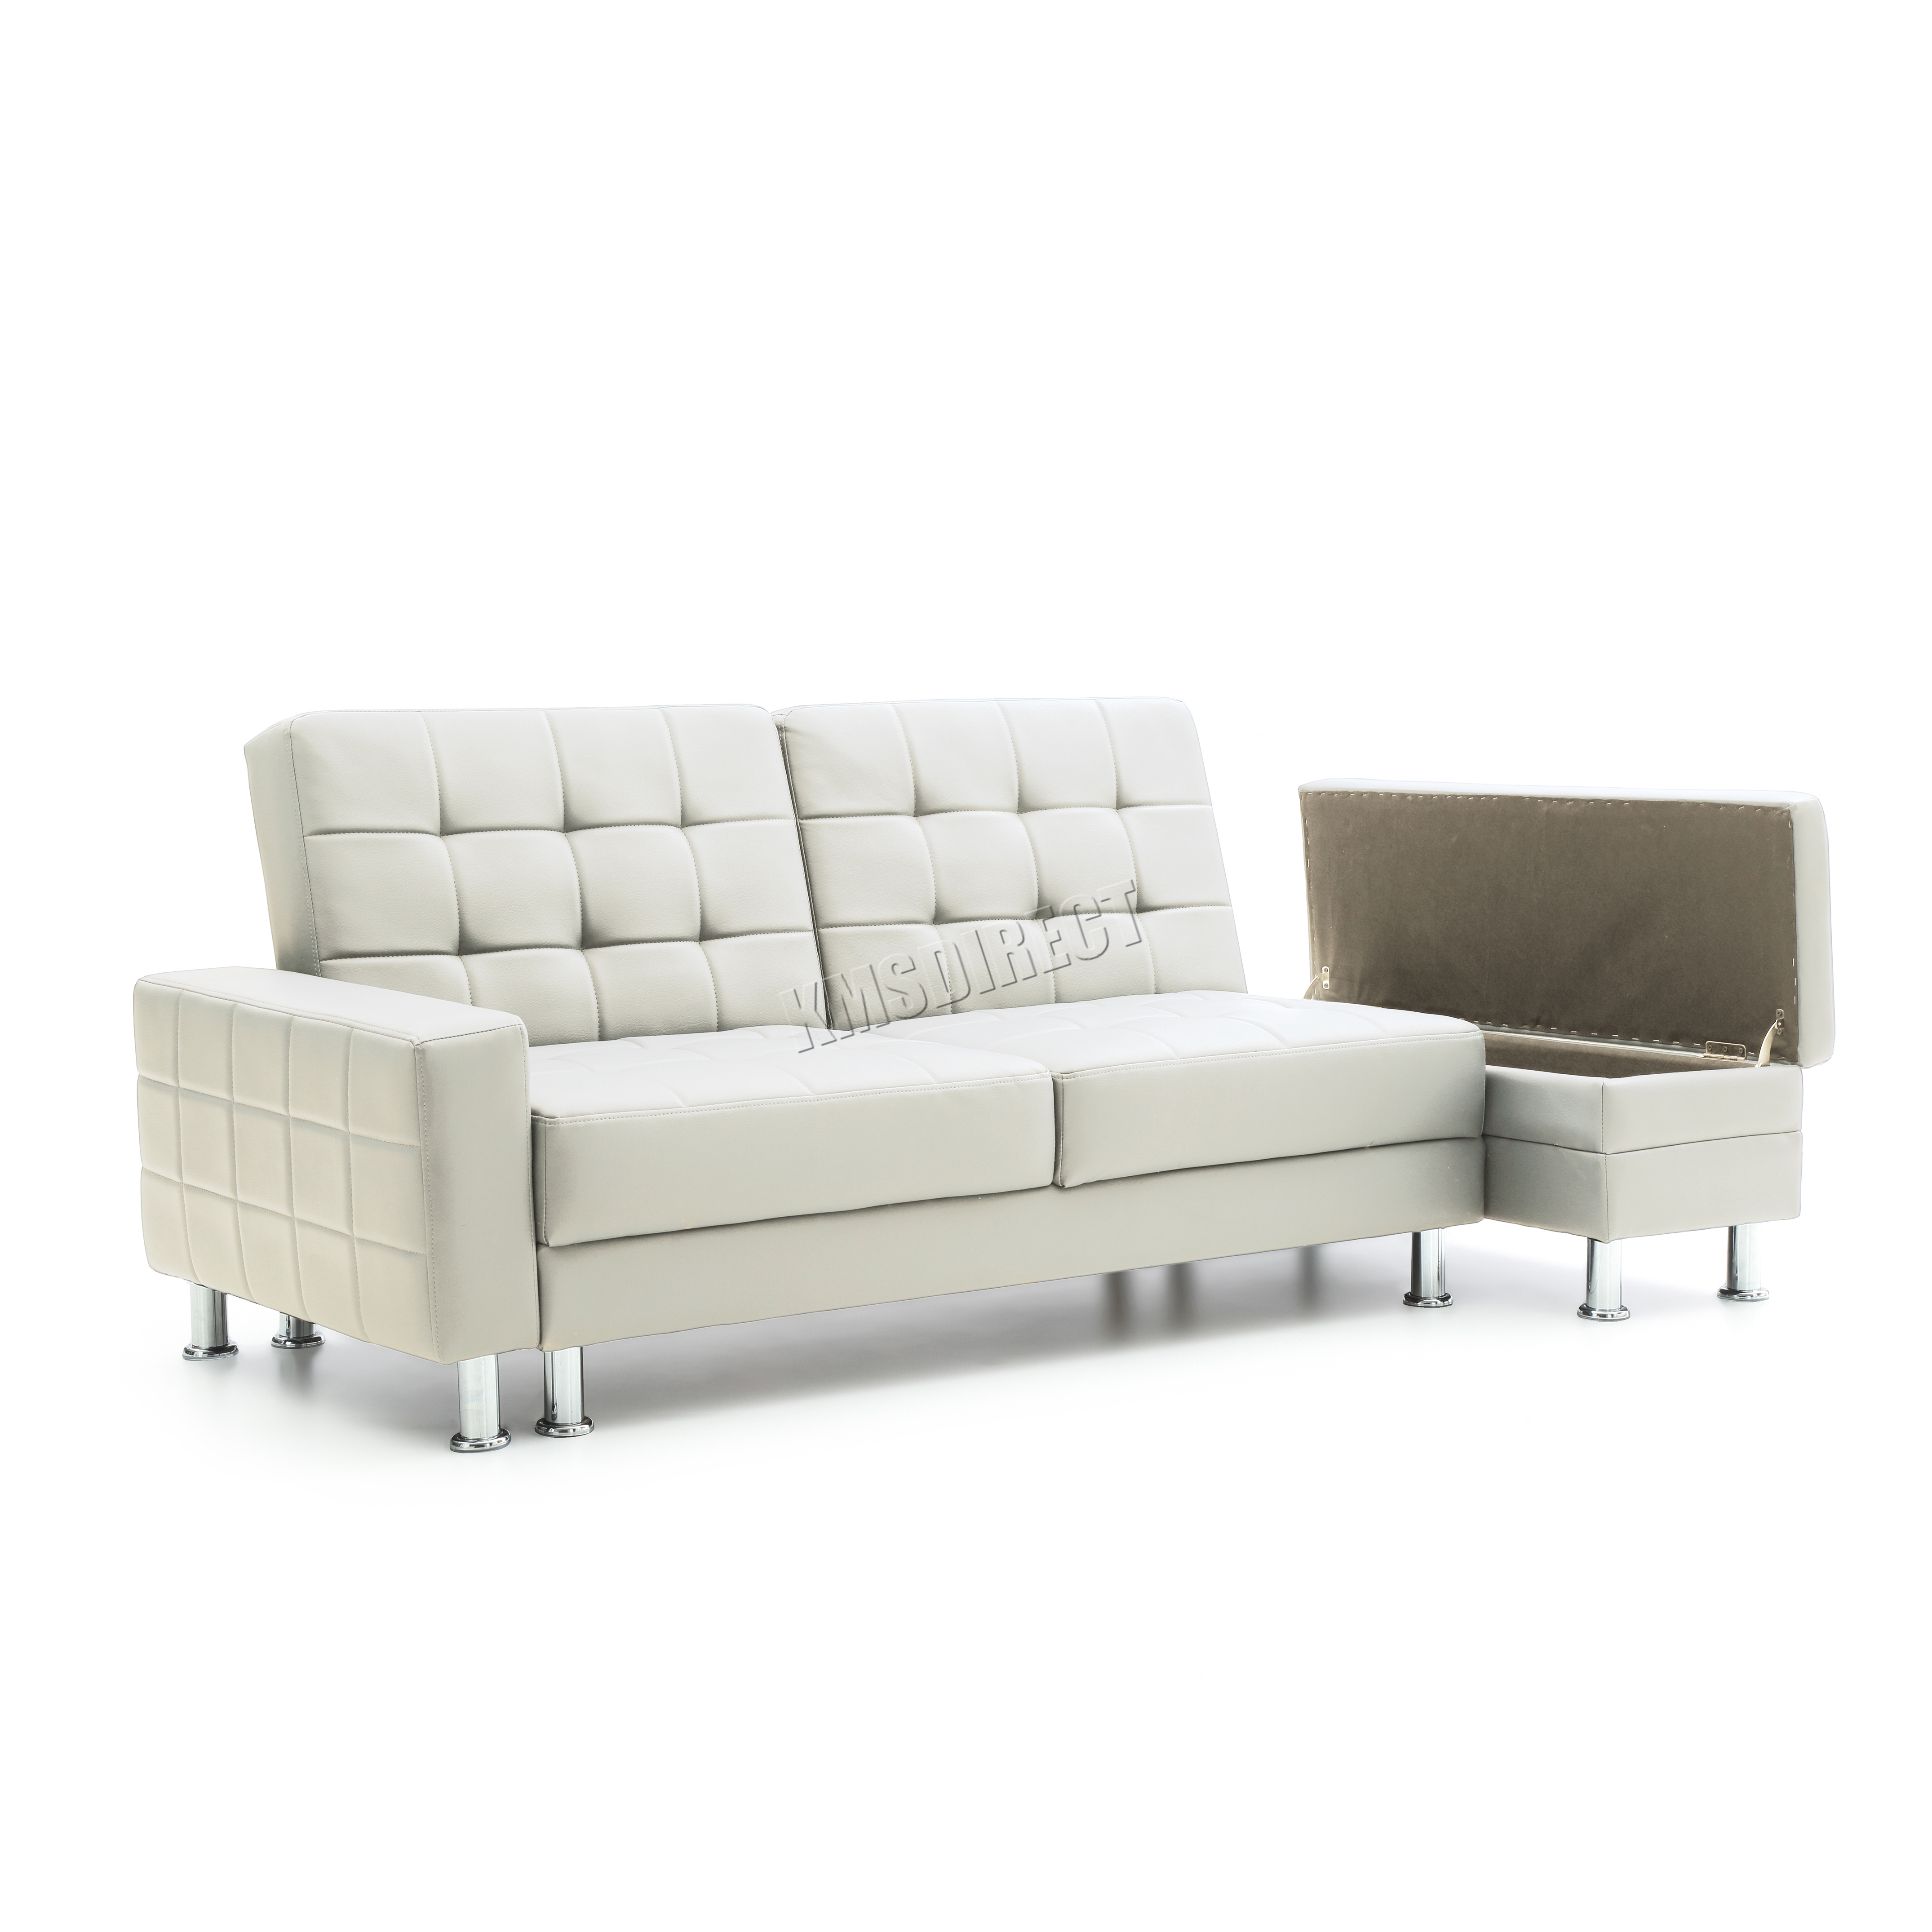 FoxHunter PU Sofa Bed With Storage 3 Seater Guest Sleeper Ottoman